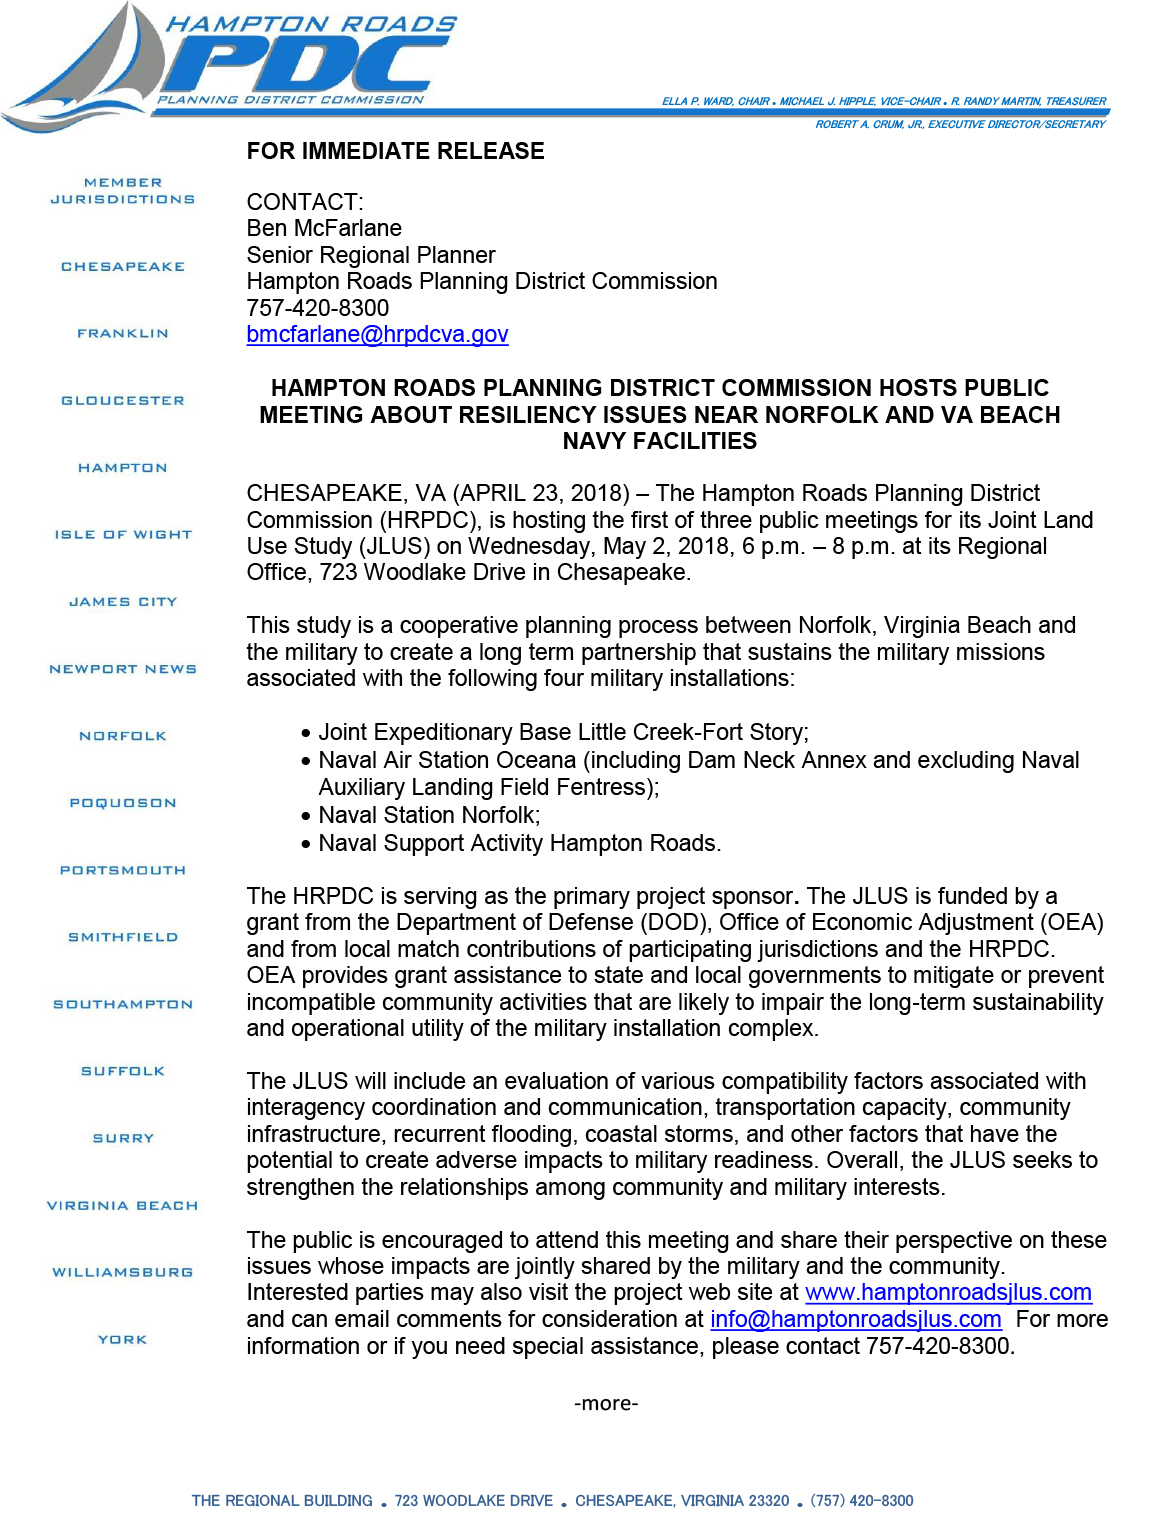 Page 1 of Press Release for HRPDC Public Meeting About Resiliency Issues Near Norfolk and Va Beach Navy Facilities